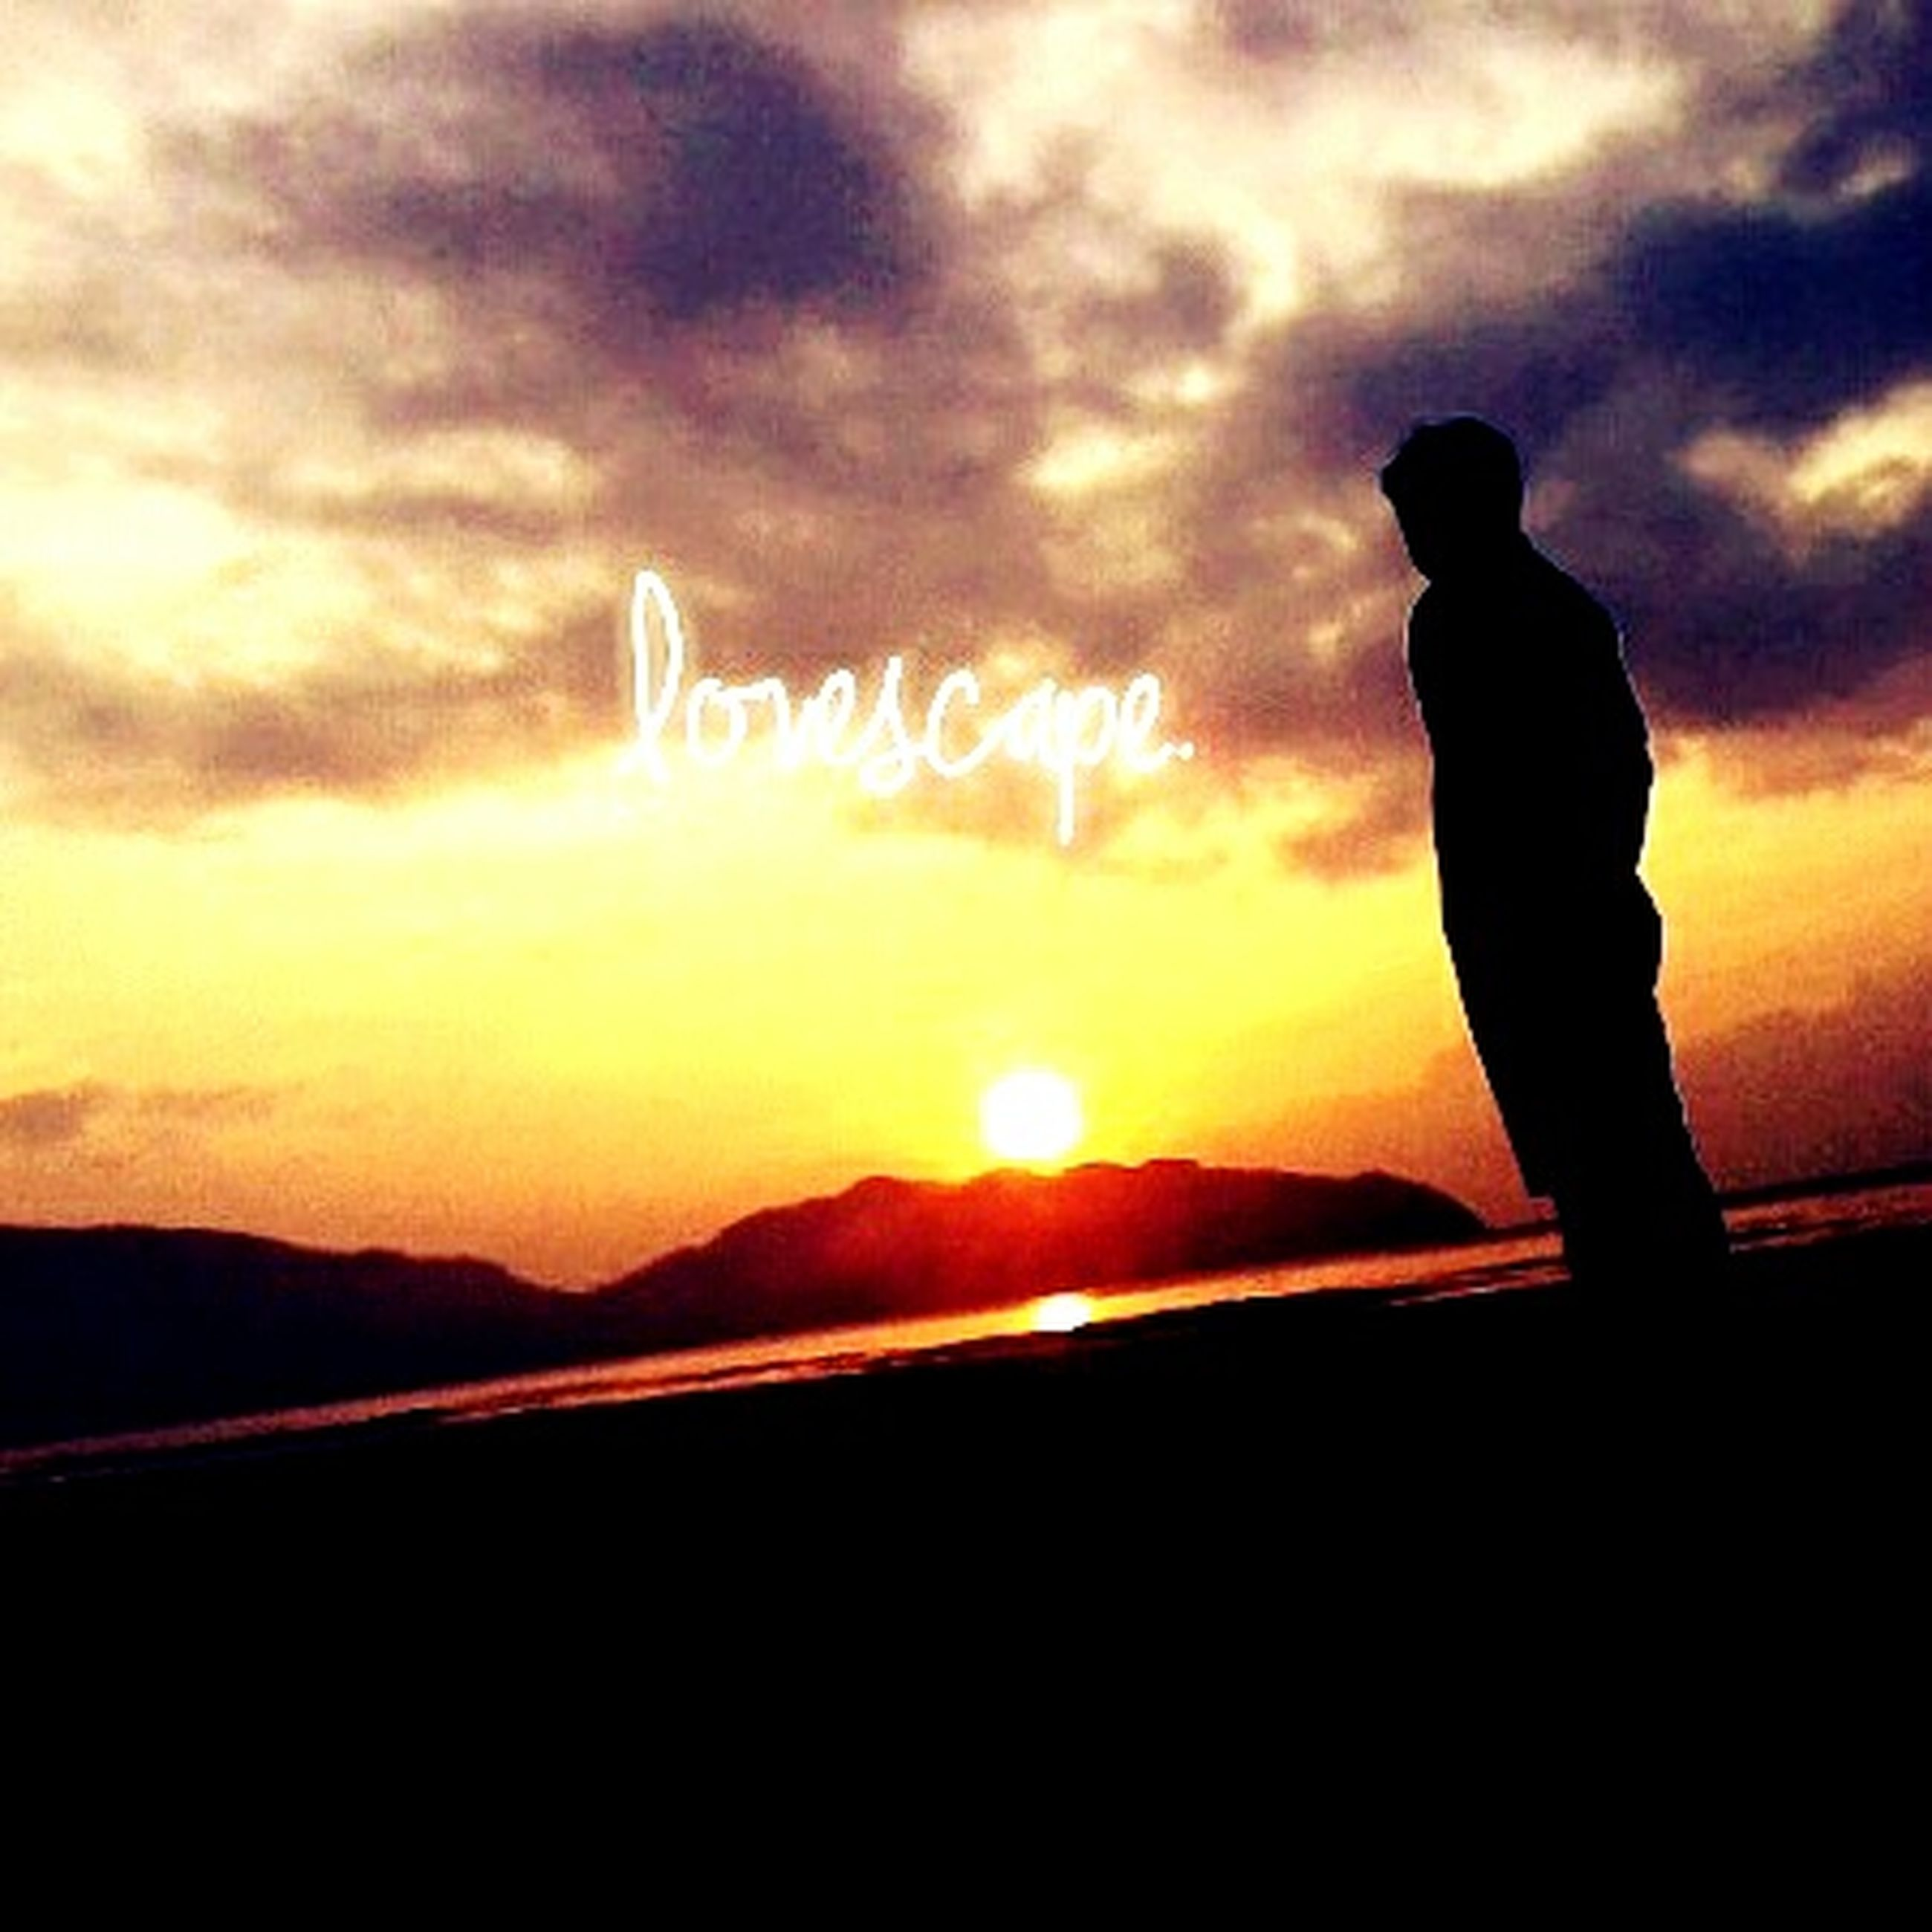 silhouette, sunset, men, standing, scenics, tranquility, tranquil scene, cloud - sky, idyllic, mountain, sky, nature, getting away from it all, beauty in nature, outdoors, solitude, outline, cloud, dramatic sky, orange color, atmospheric mood, sun, mountain peak, remote, carefree, escapism, non-urban scene, cliff